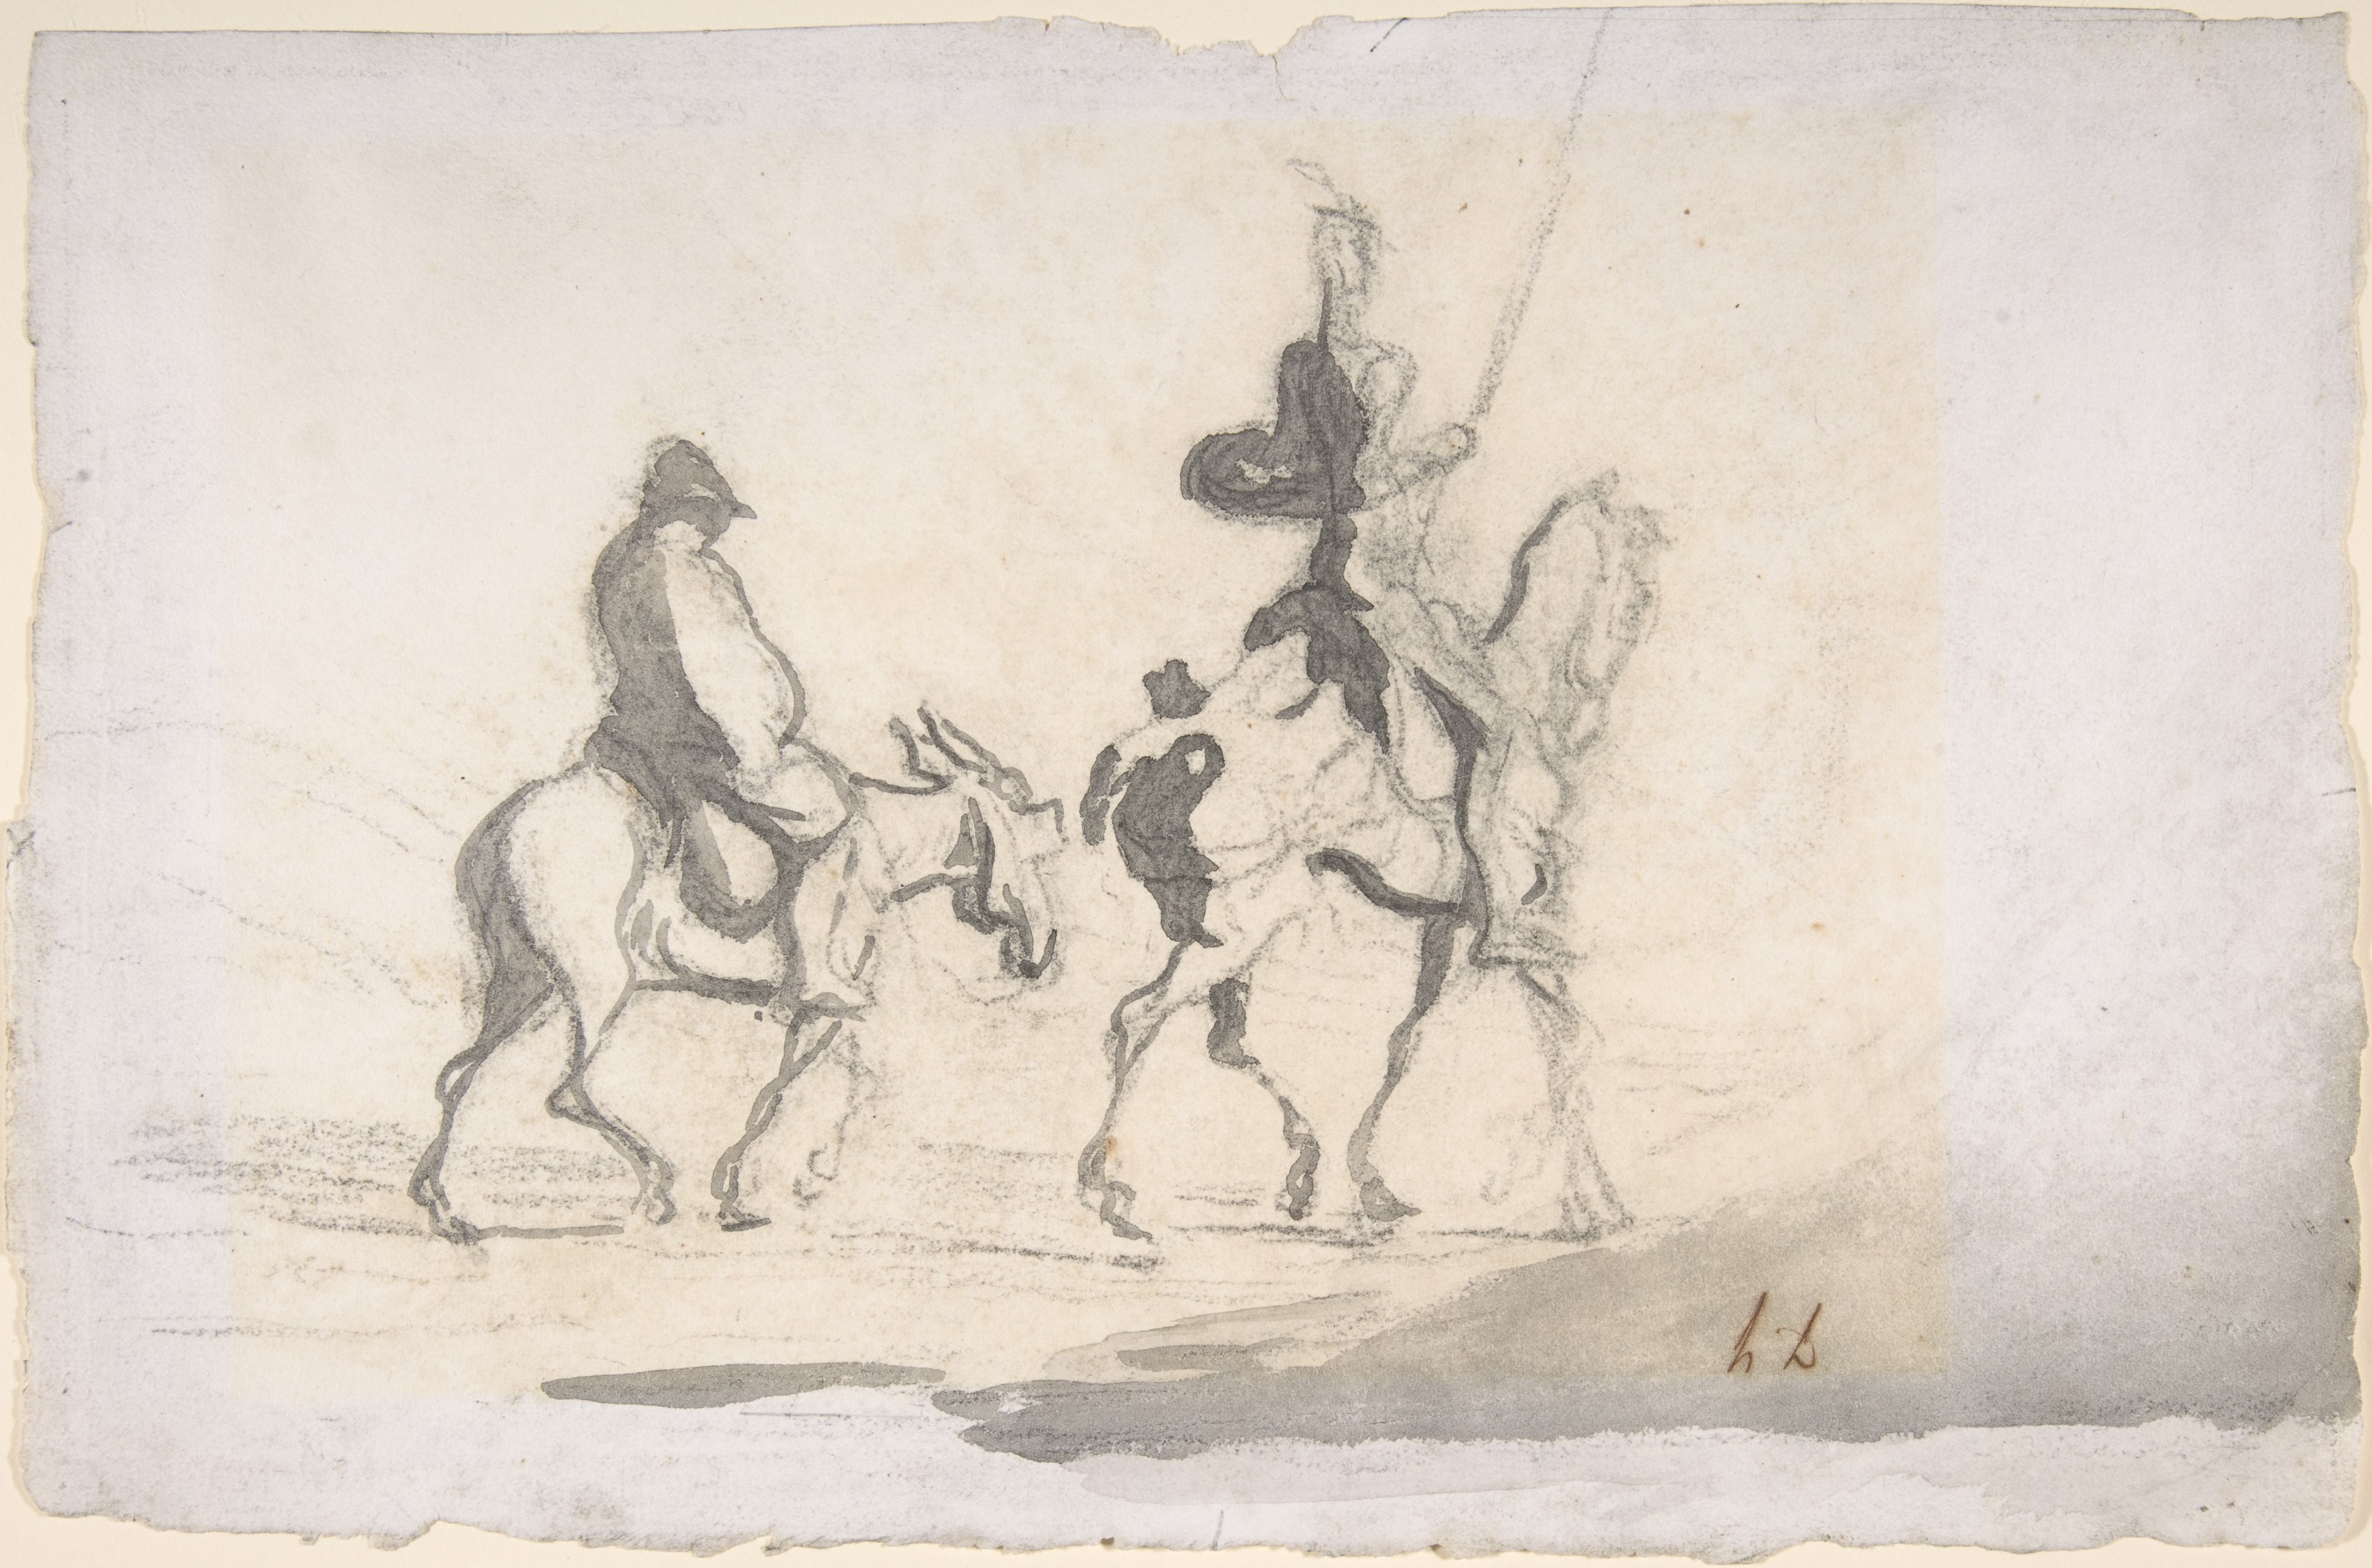 Don Quichote et Sancho Panza, Honoré Daumier